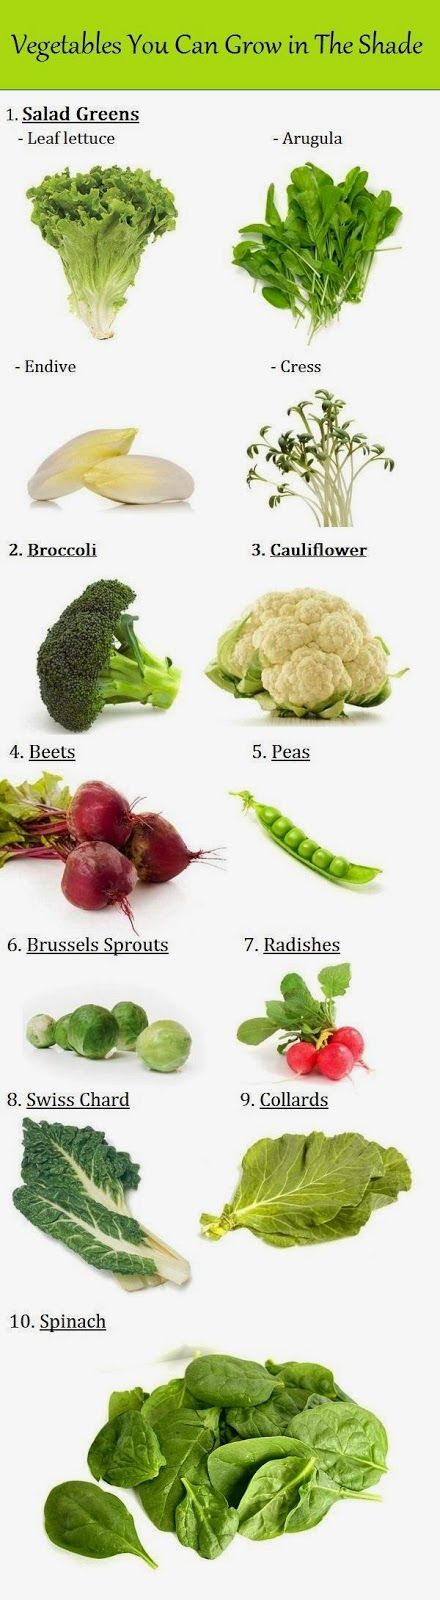 101 Gardening: Vegetables You Can Grow in The Shade